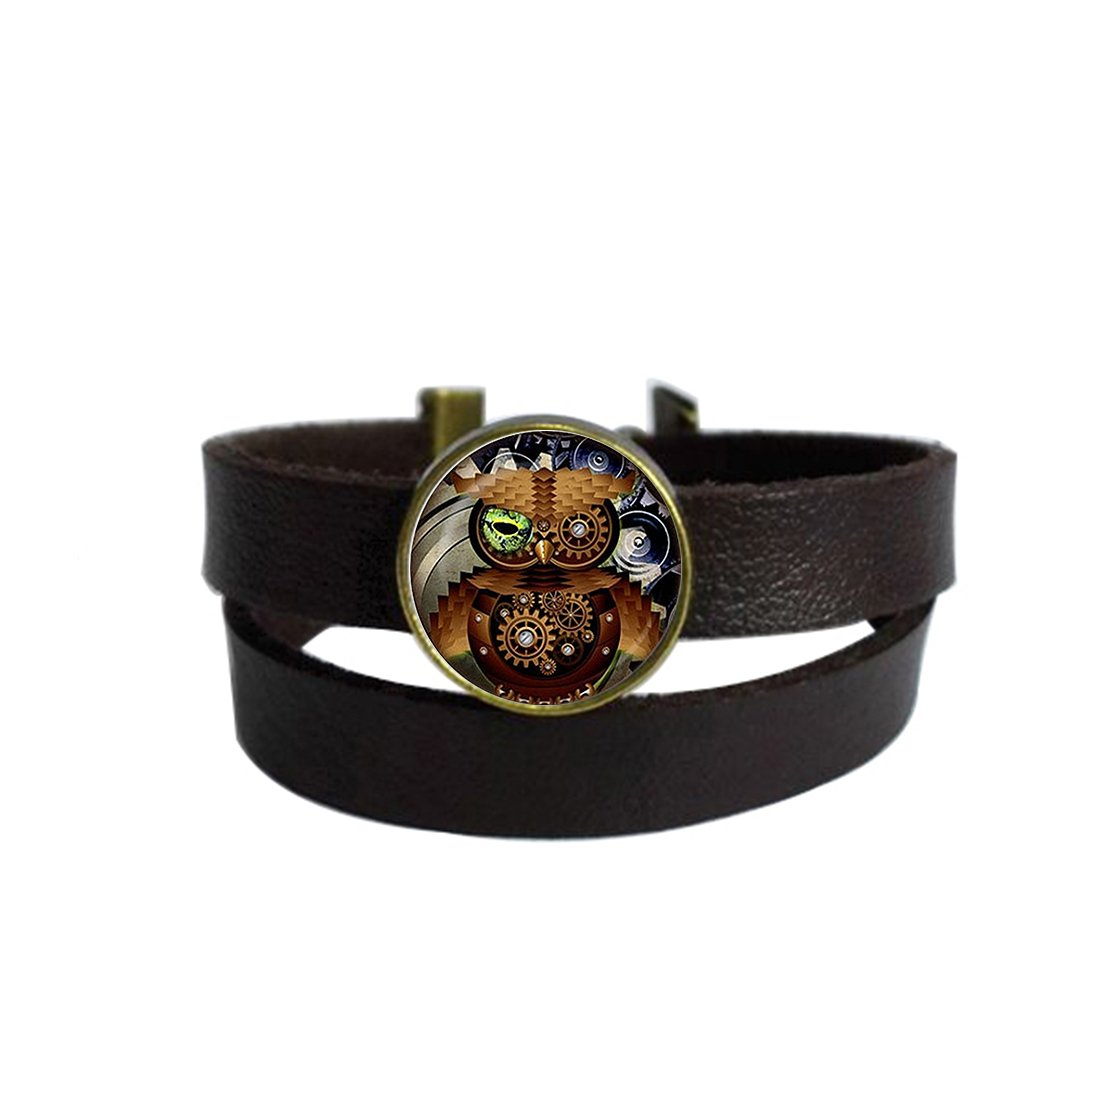 Two Layers Design Dark Brown Leather Cuff Bangle Steampunk Owl Rope Wristband Bracelet with Glass Pendant